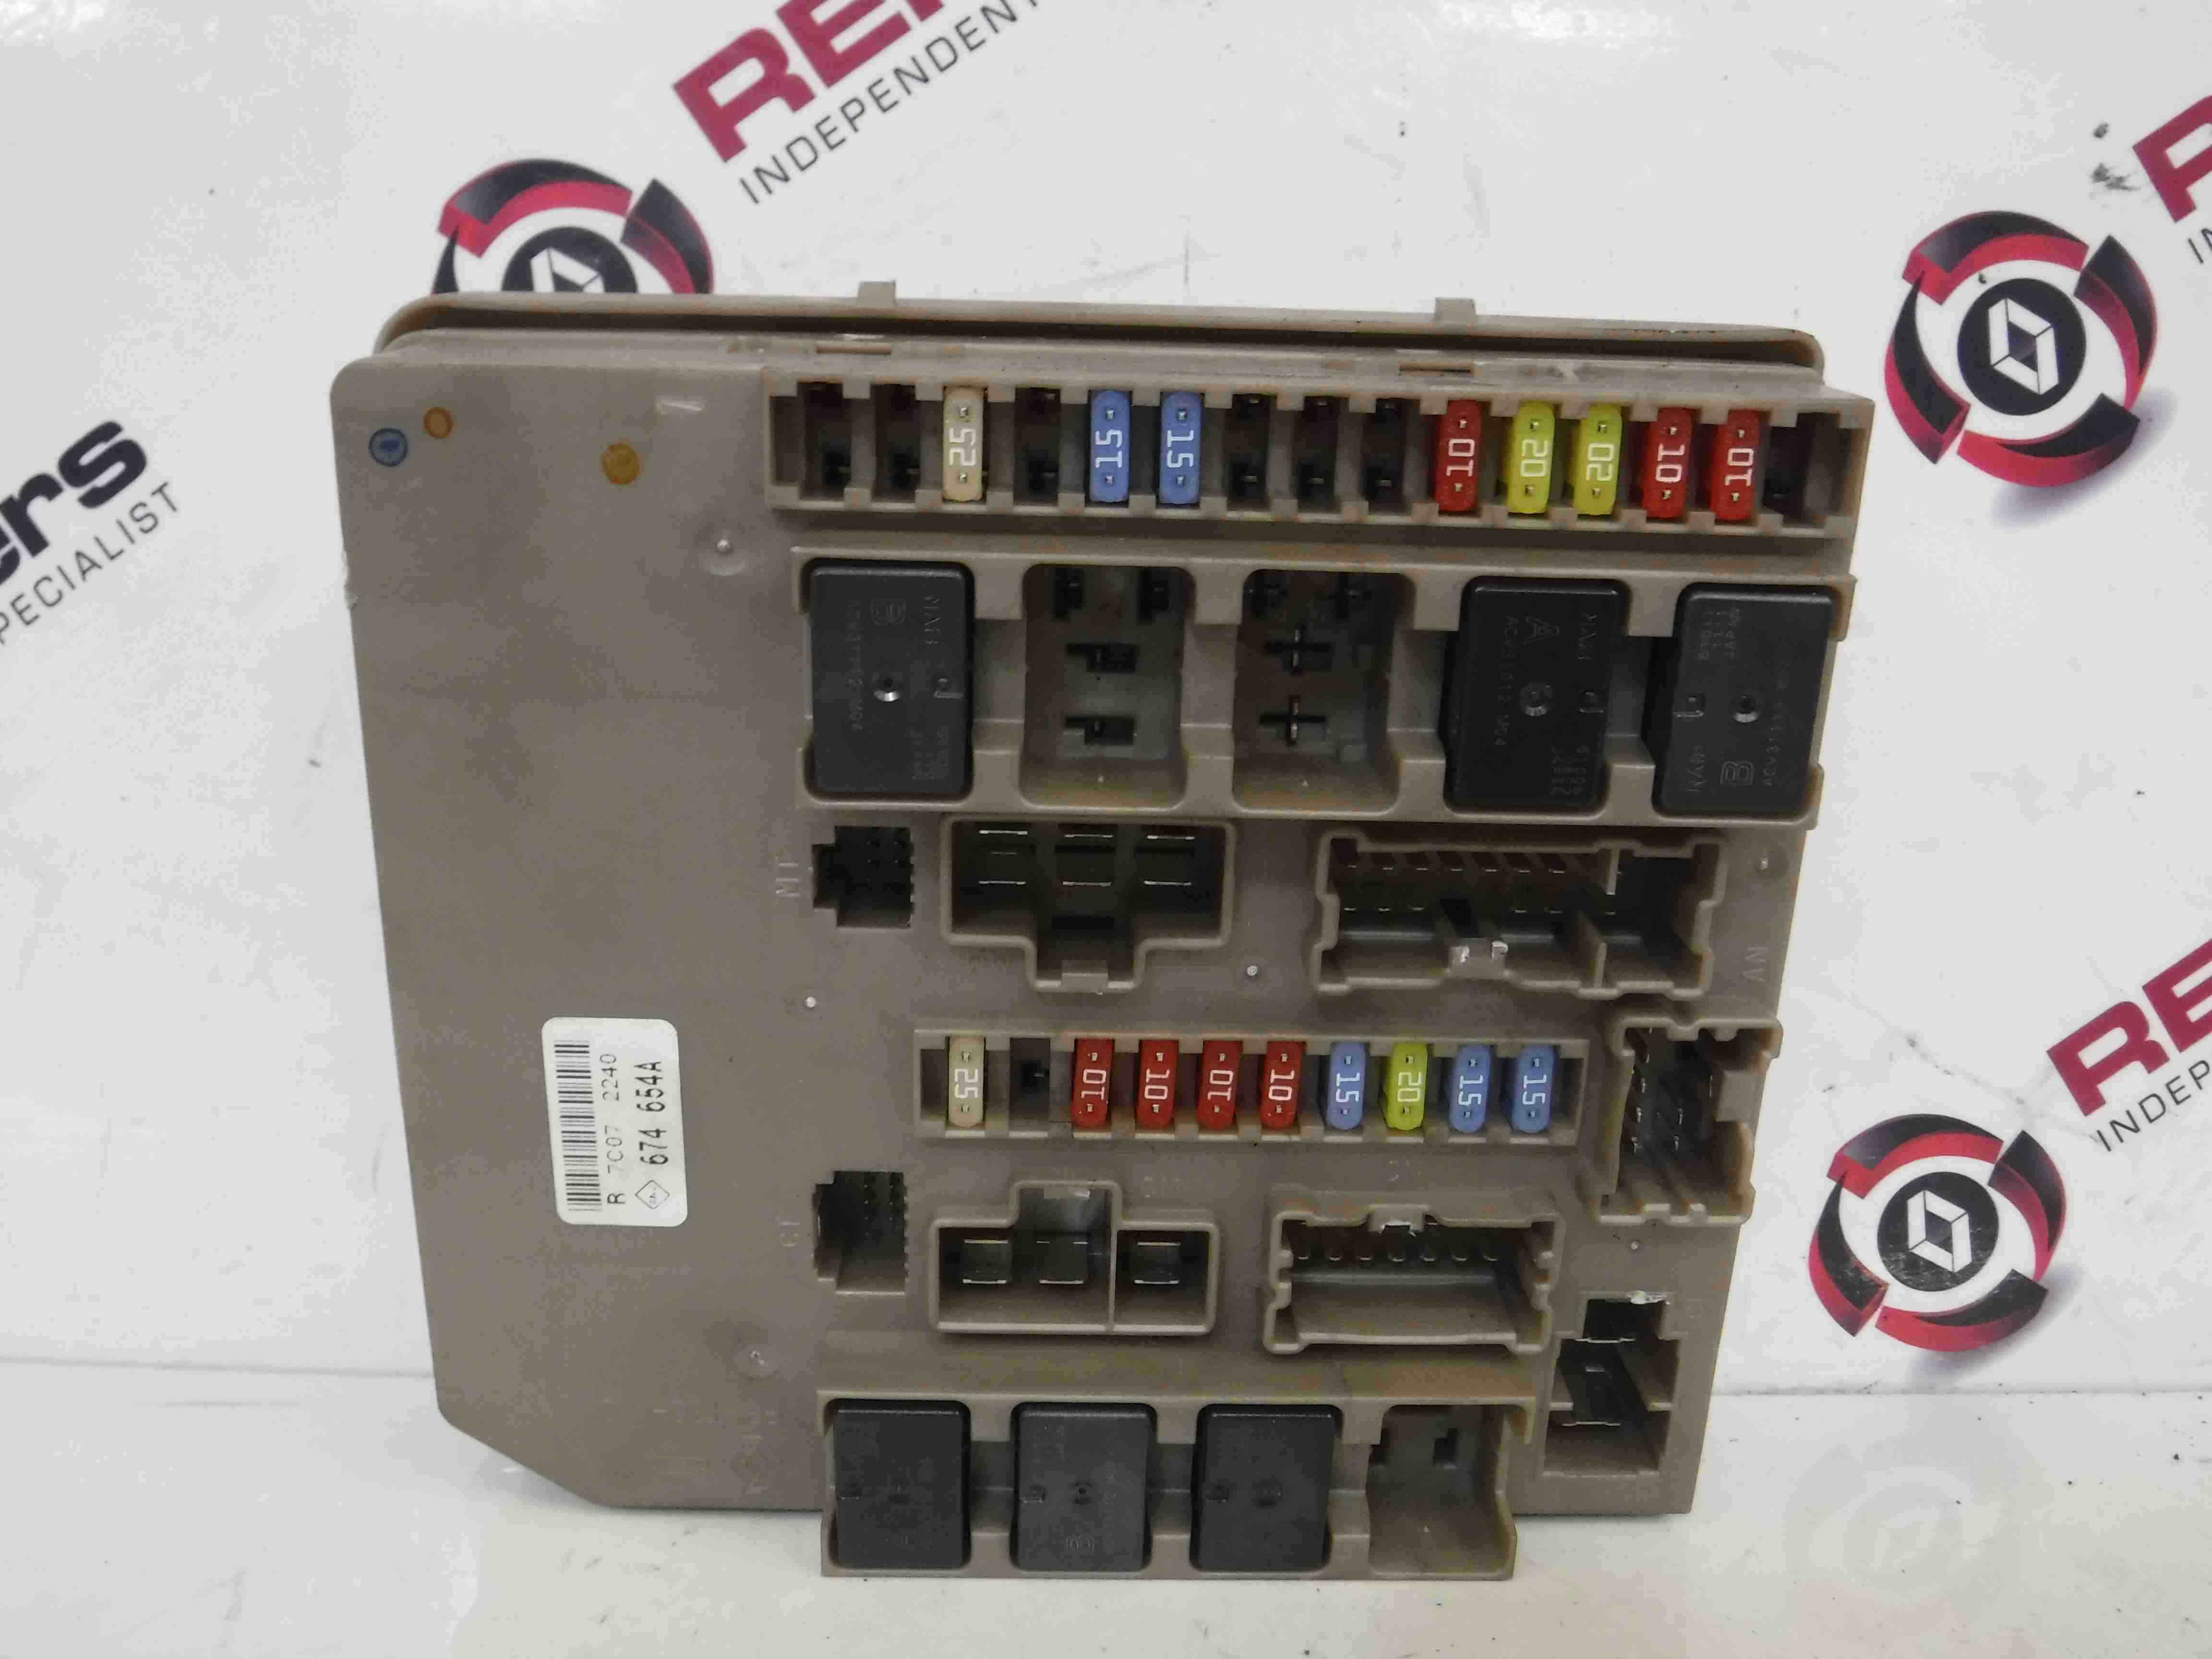 renault clio 02 fuse box wiring library Ford Focus Renault Clio MK3  Modus 20052012 Engine Bay Fuse Box UPC Unit 674658A